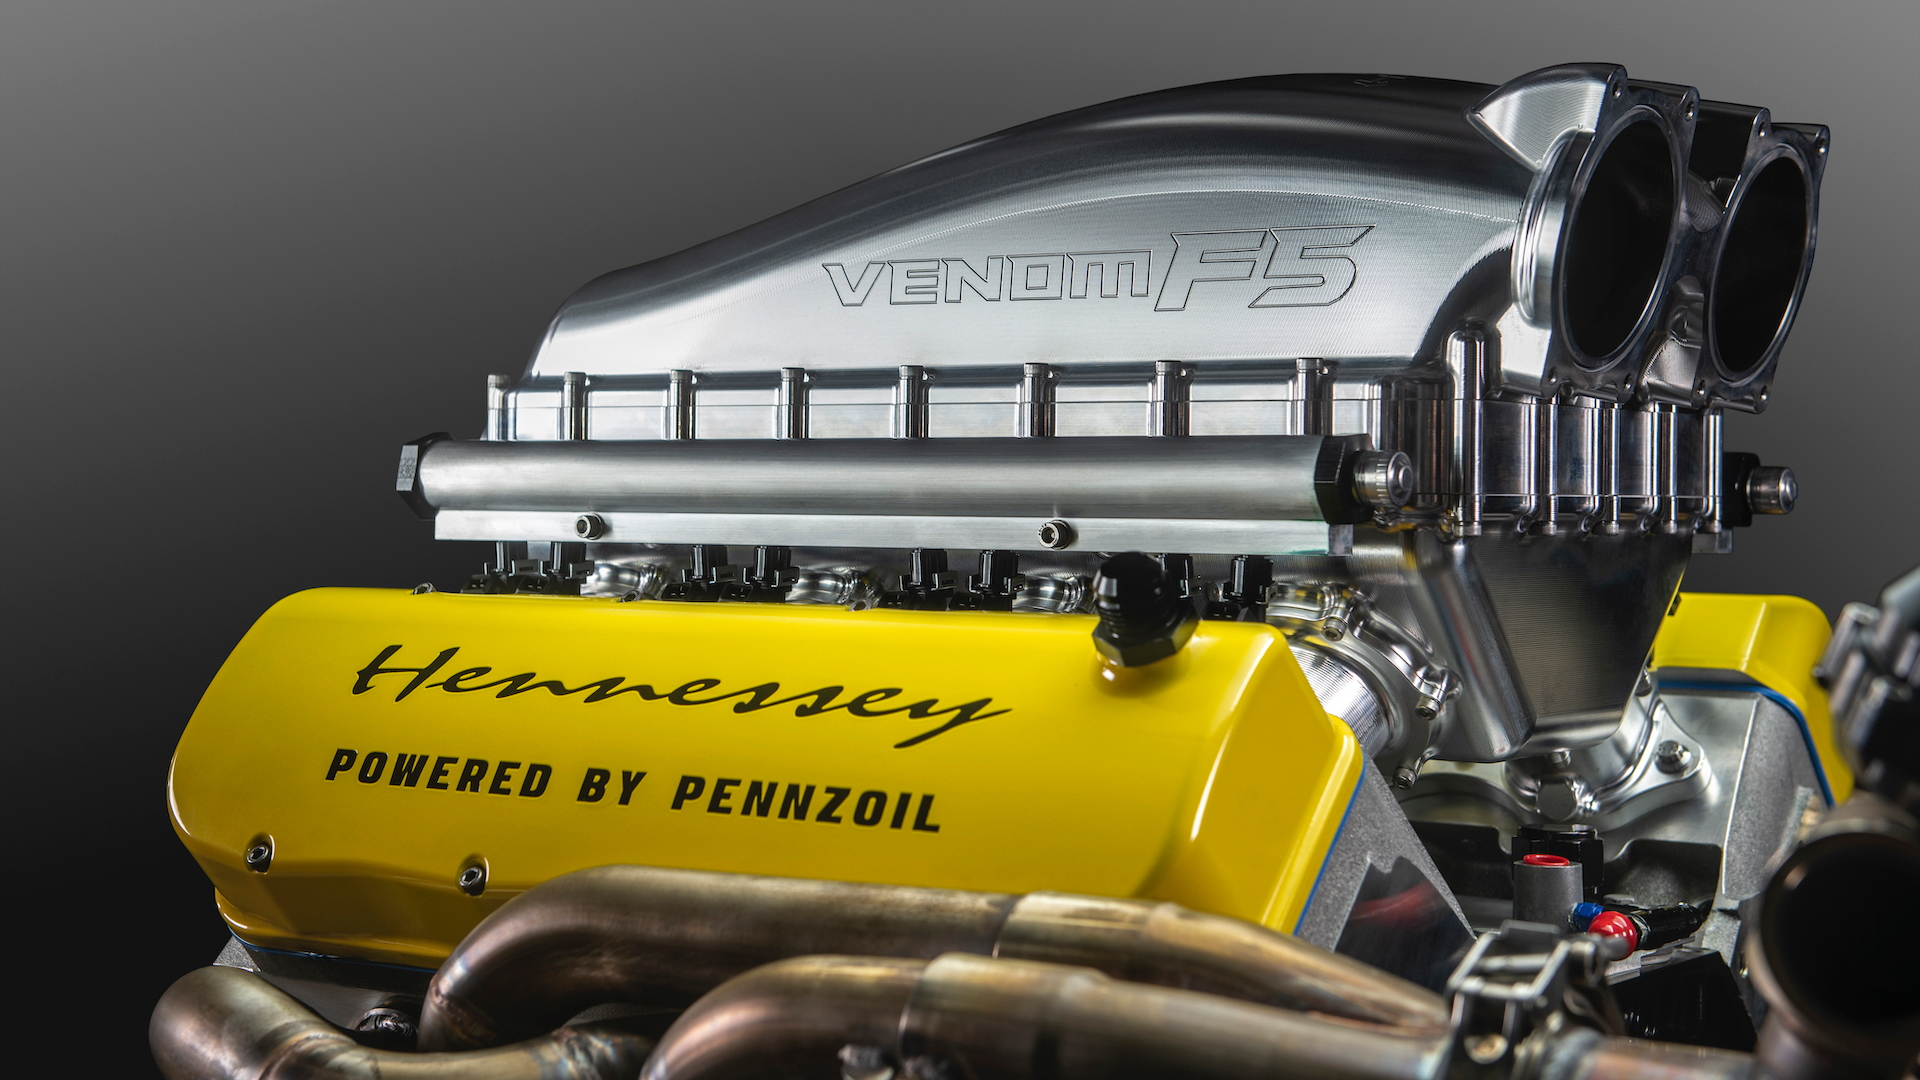 Hennessey Venom F5 Fury twin-turbo V-8 engine